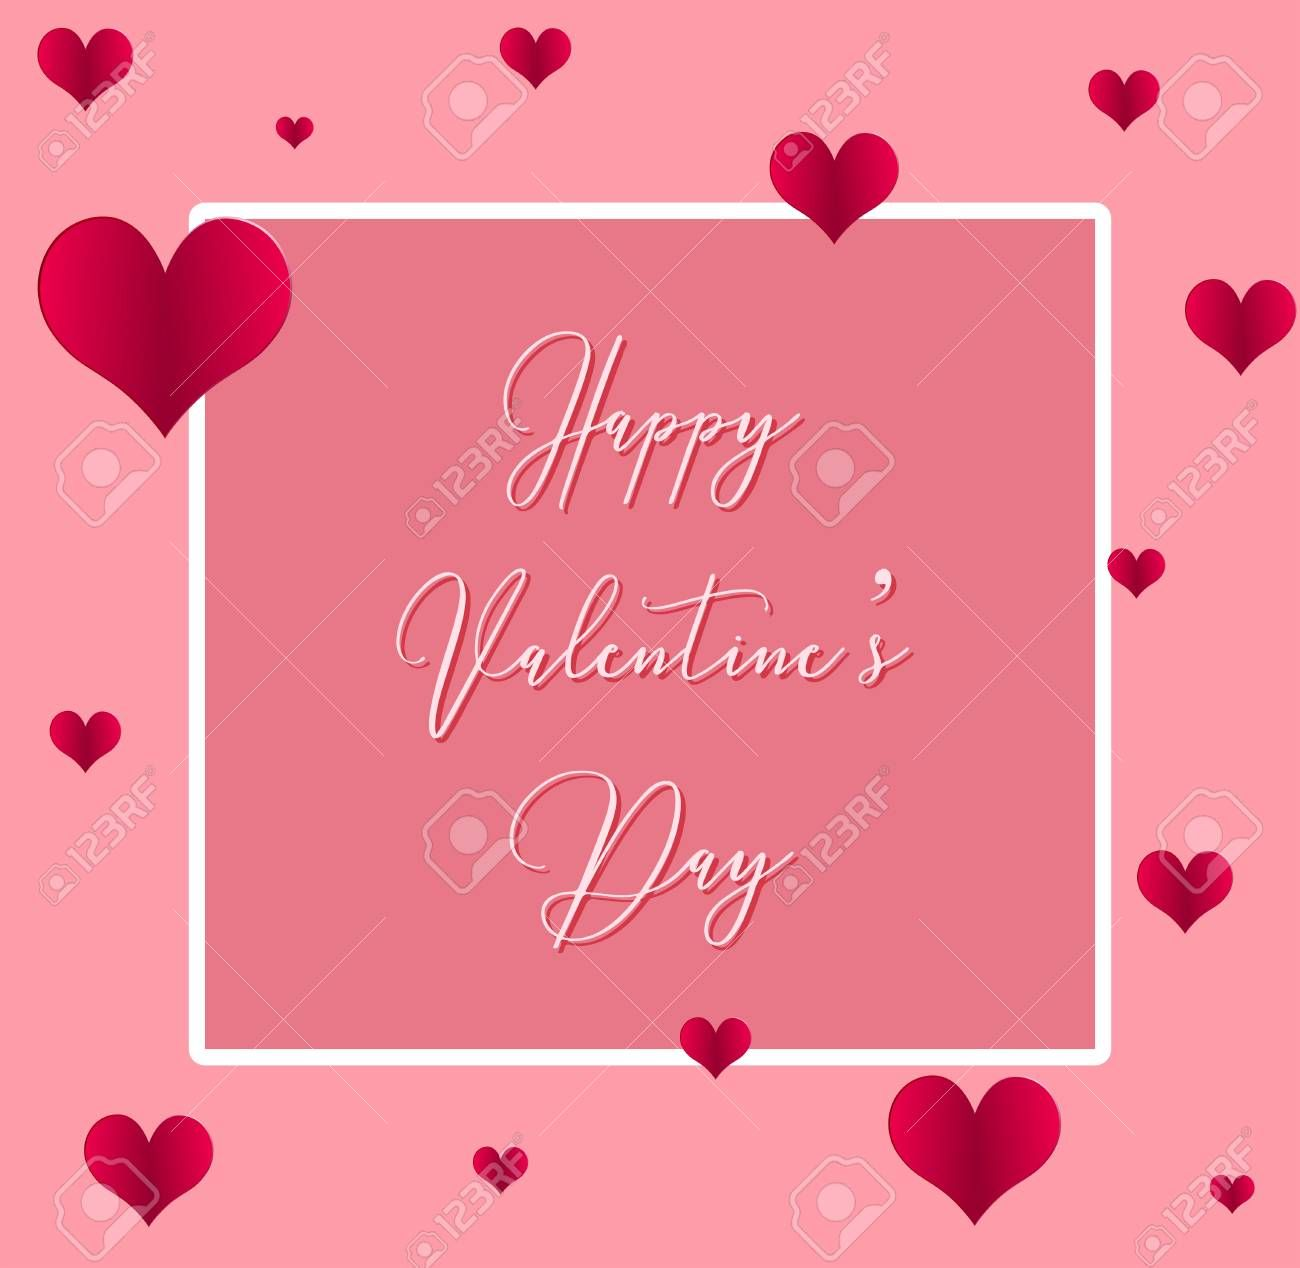 10 Top Image Valentines Card Template In 2021 Valentine Card Template Card Template Valentines Cards